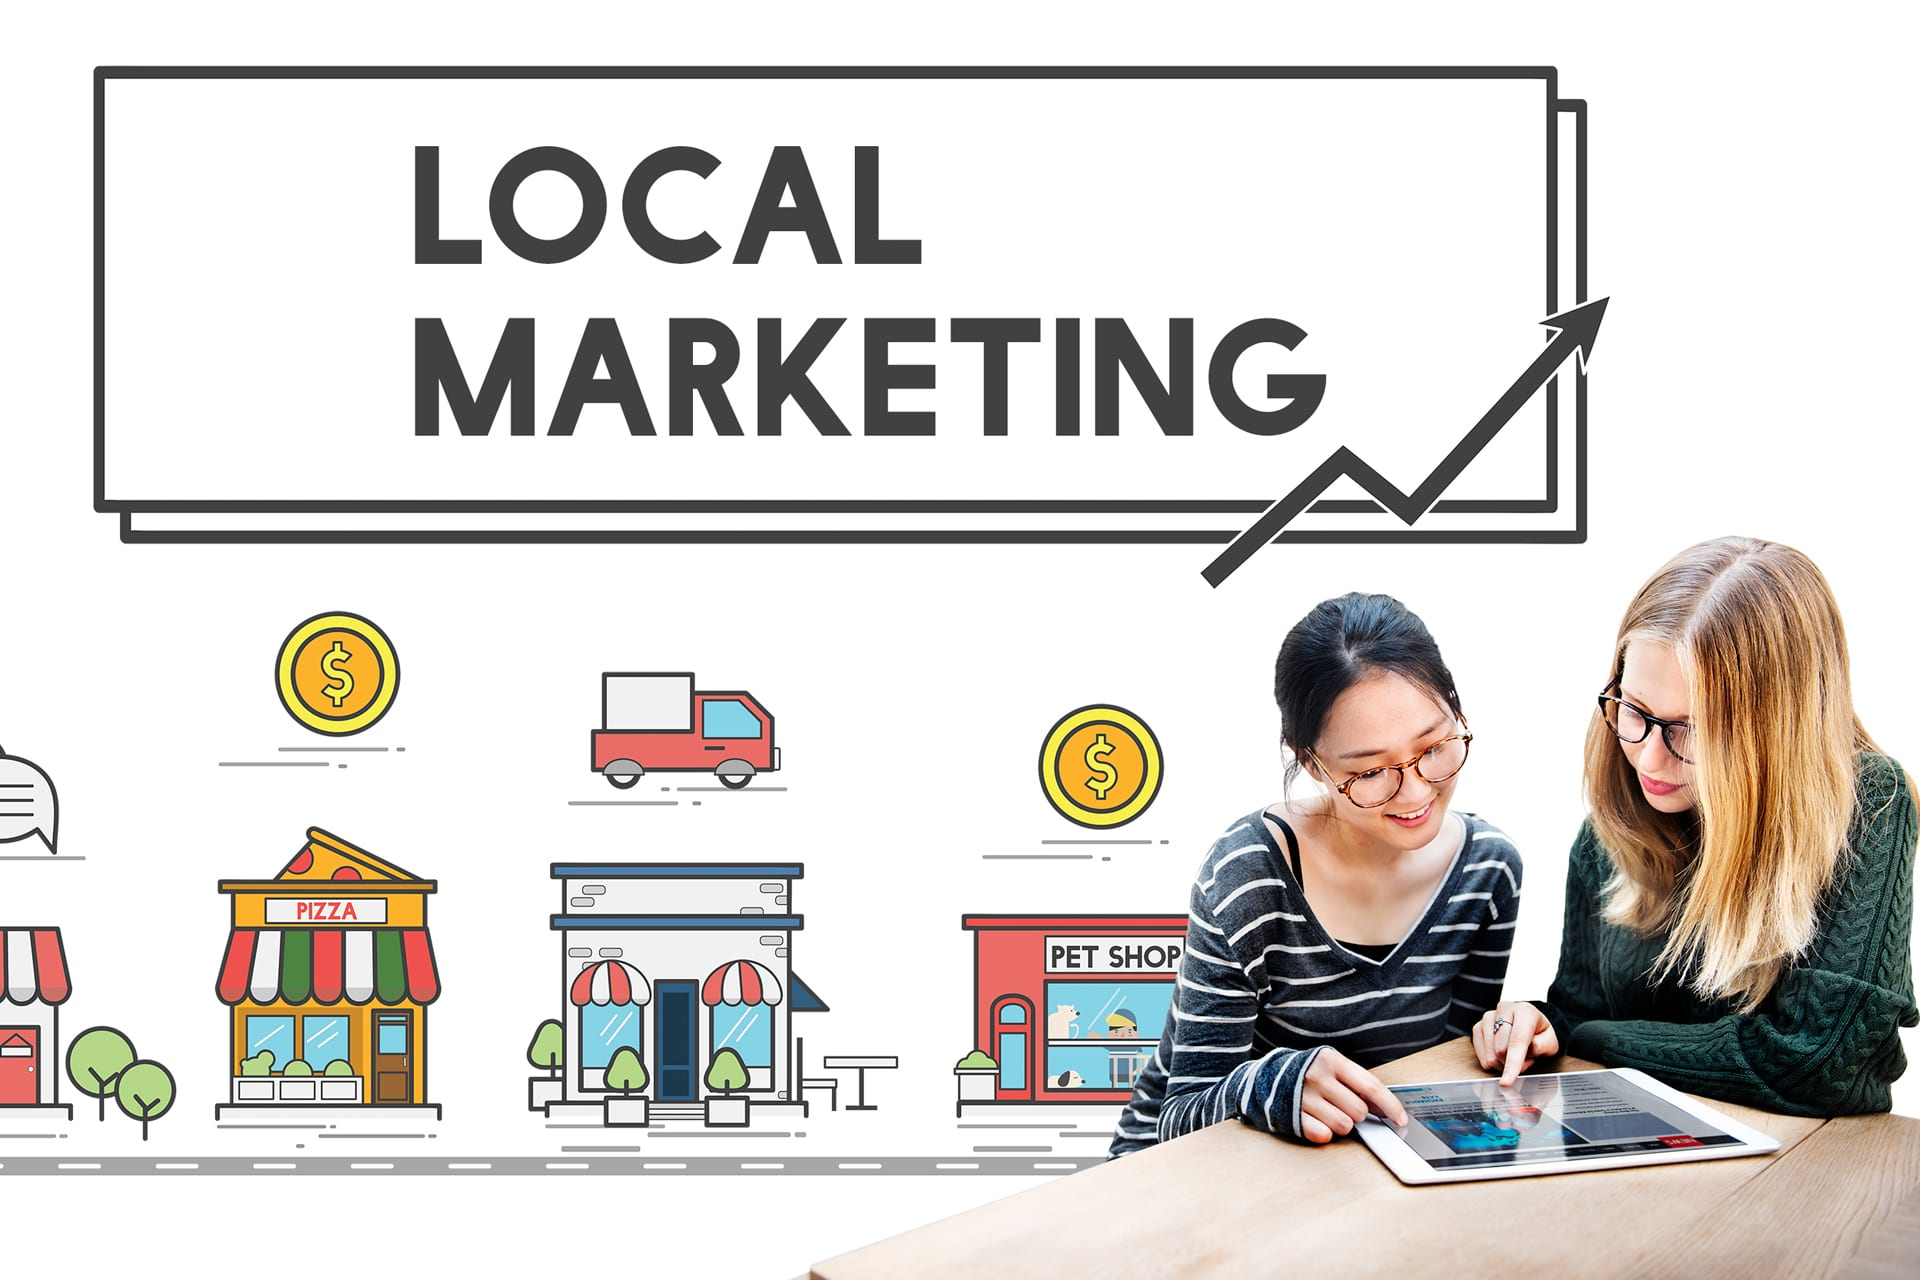 Market Locally Online: 9 Things You Need To Know